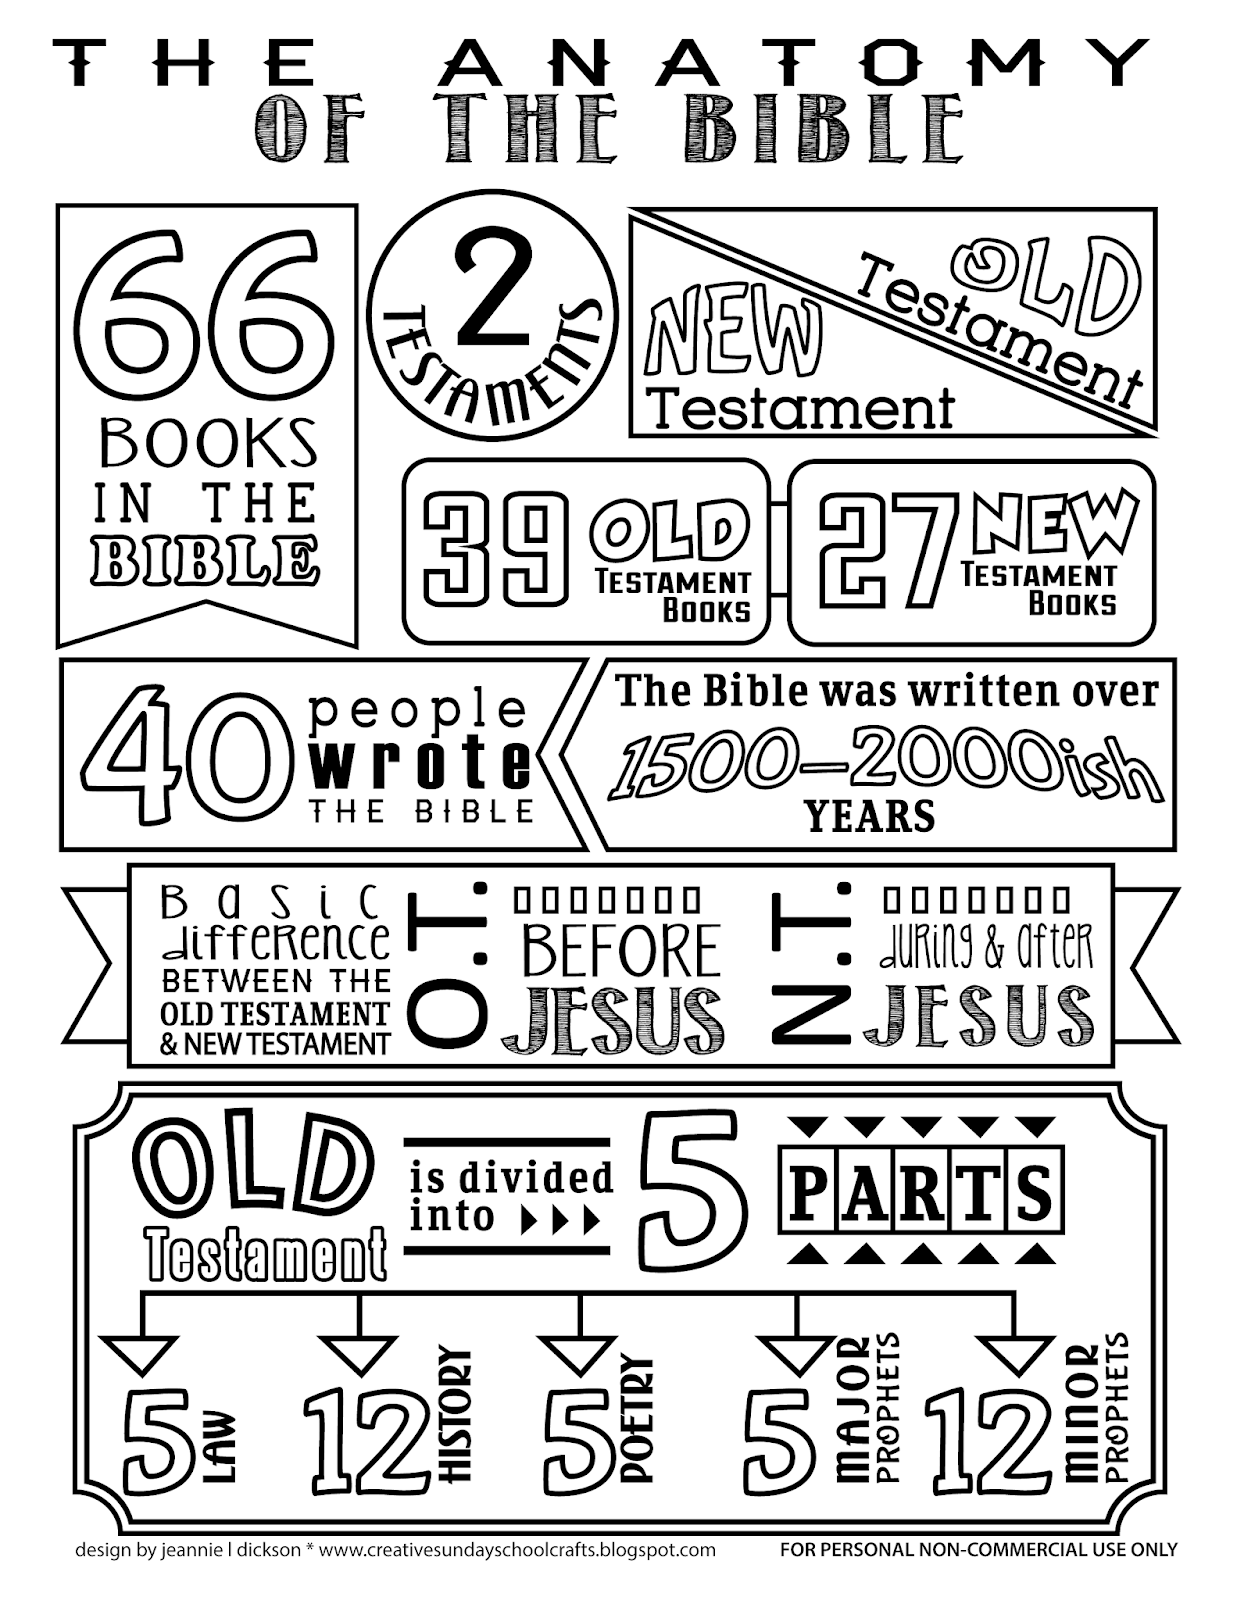 Creative Sunday School Crafts: Anatomy Of The Bible Coloring Page.